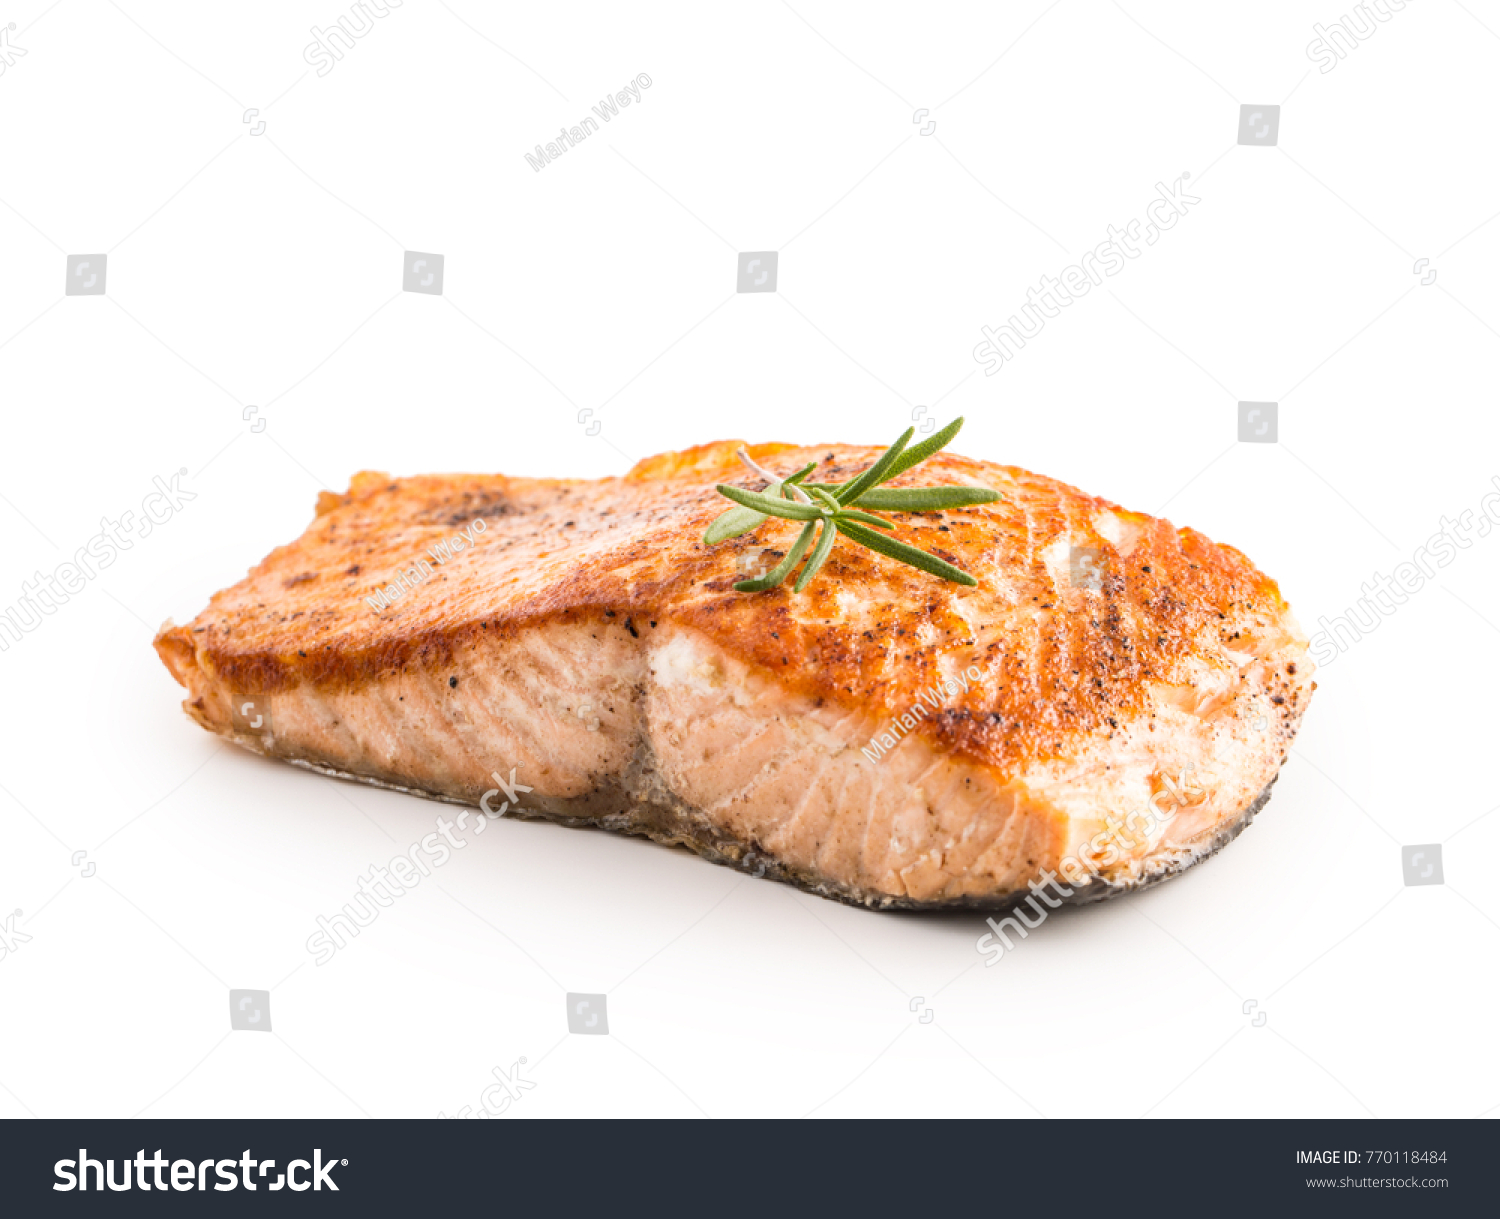 Salmon roast steak isolated on white background.